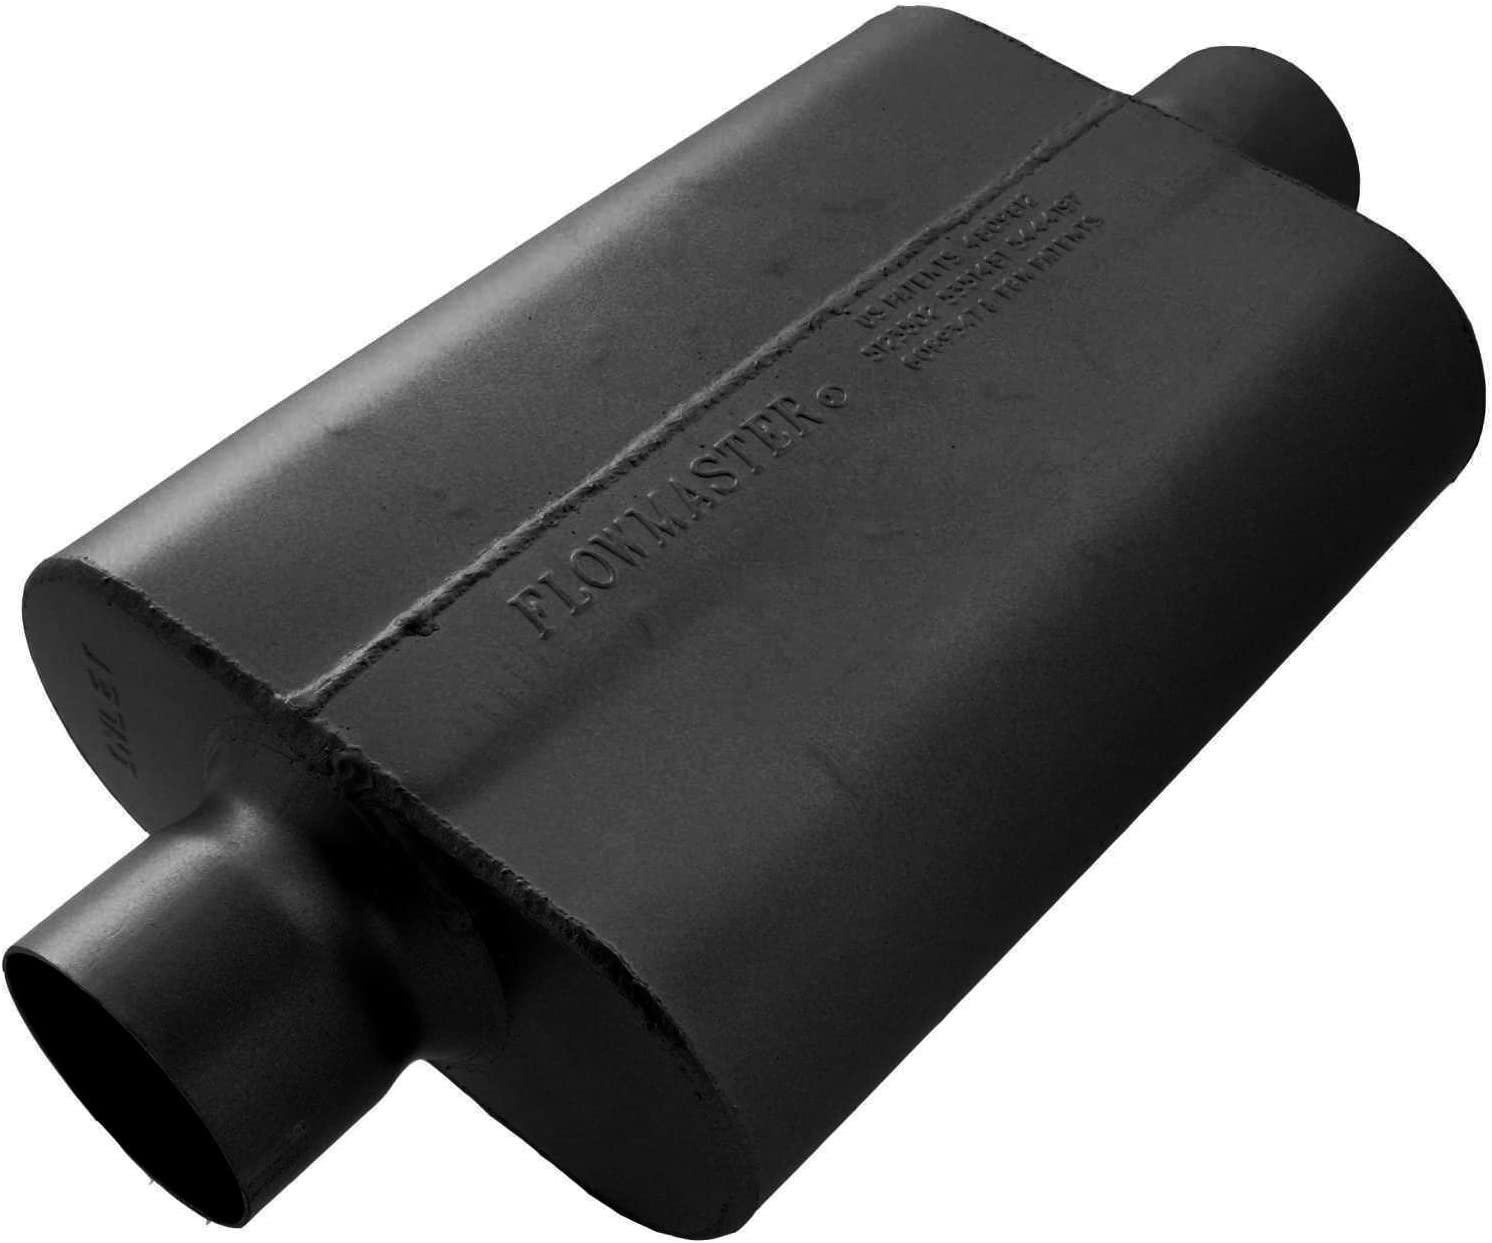 B0002Z9NRE Flowmaster 943040 40 Delta Flow Muffler - 3.00 Center IN / 3.00 Center OUT - Aggressive Sound 61-28UkrdsL.SL1500_